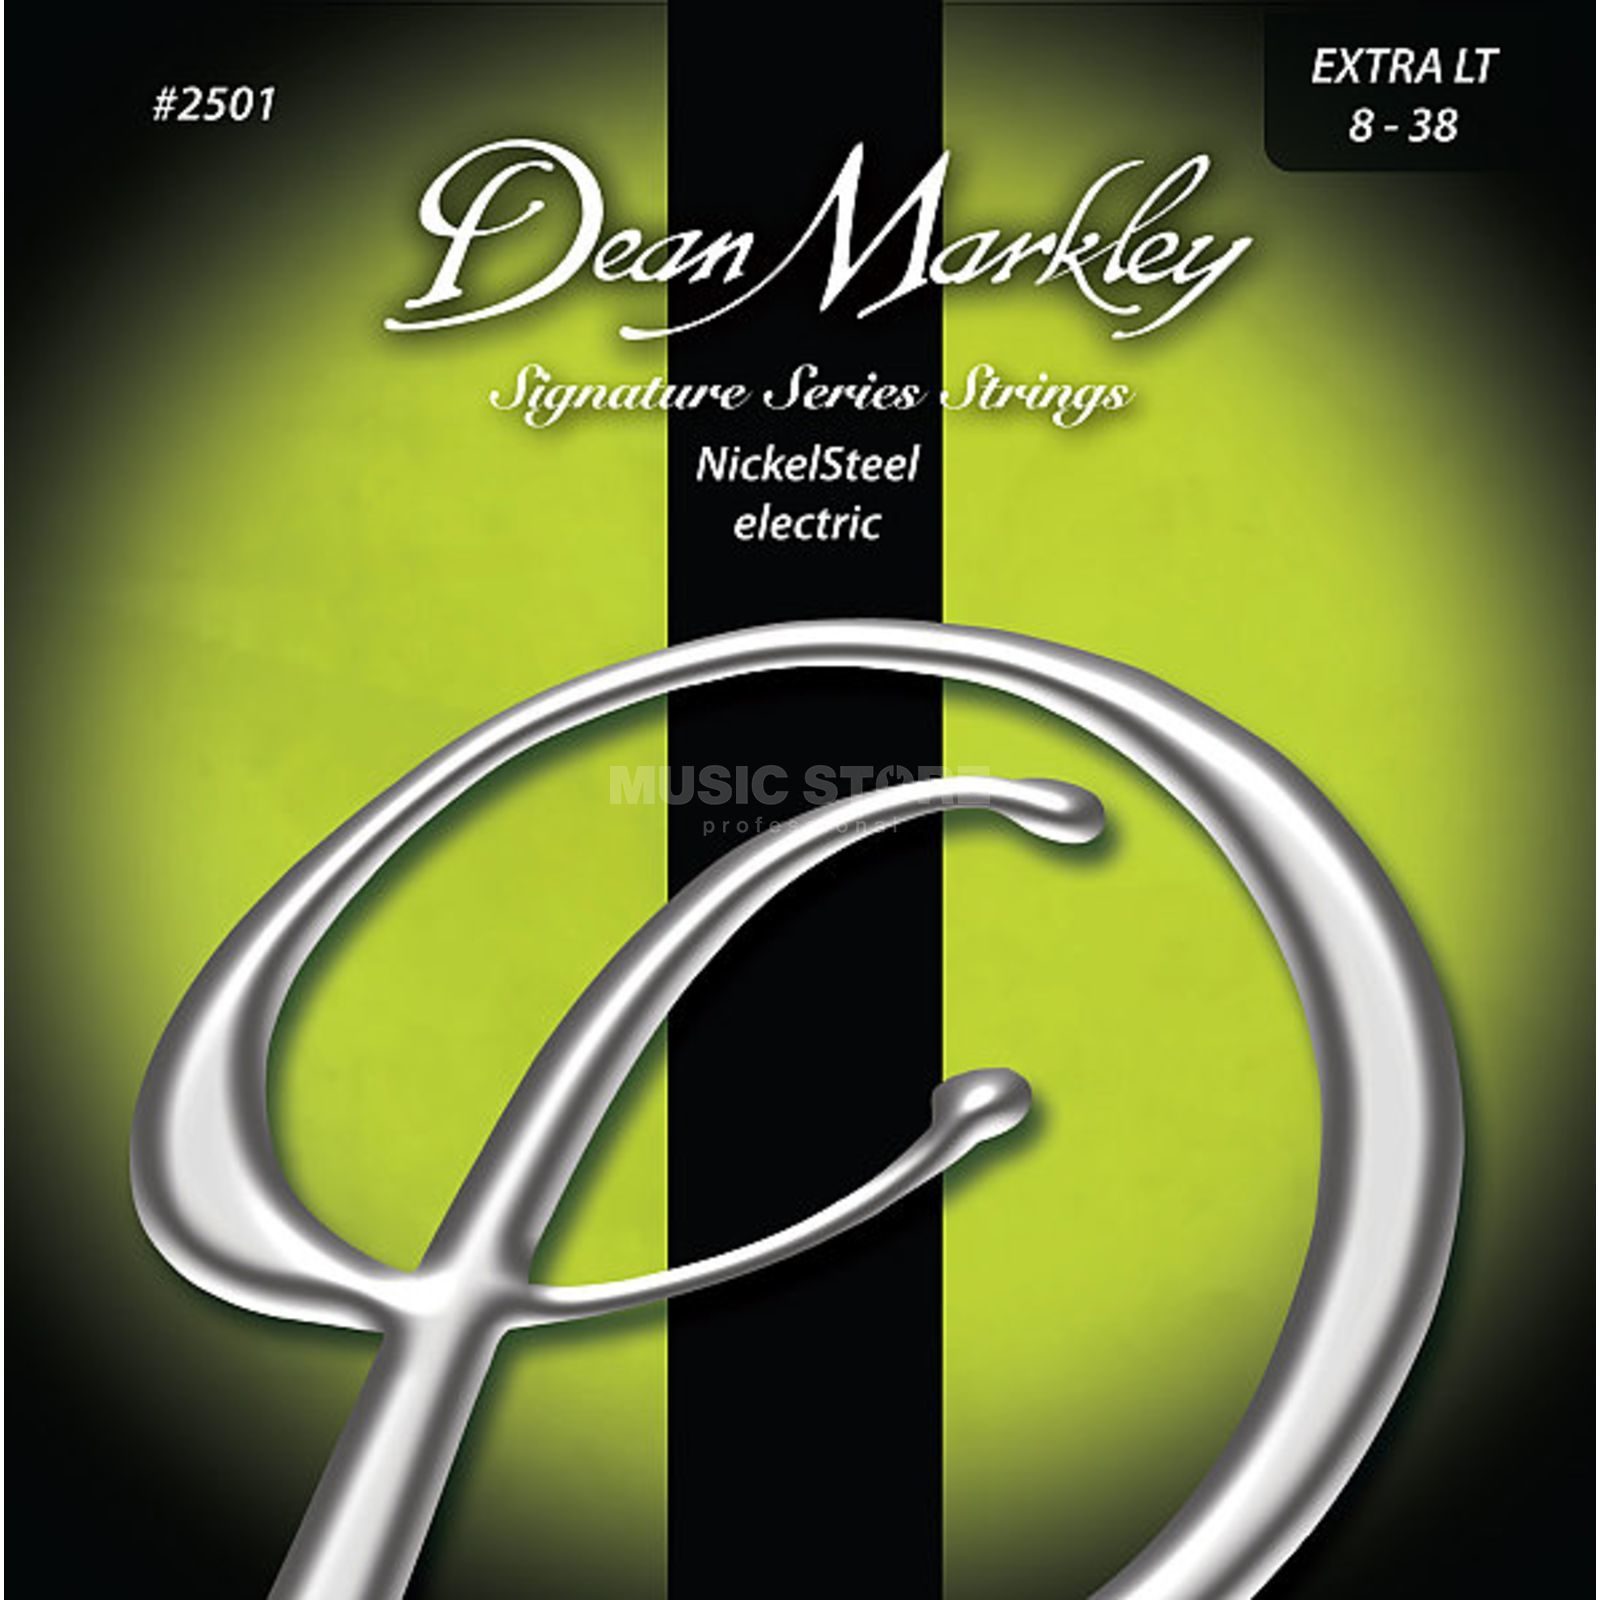 Dean Markley E-Guit. Strings 08-38 2501B XL Nickel Steel Produktbillede